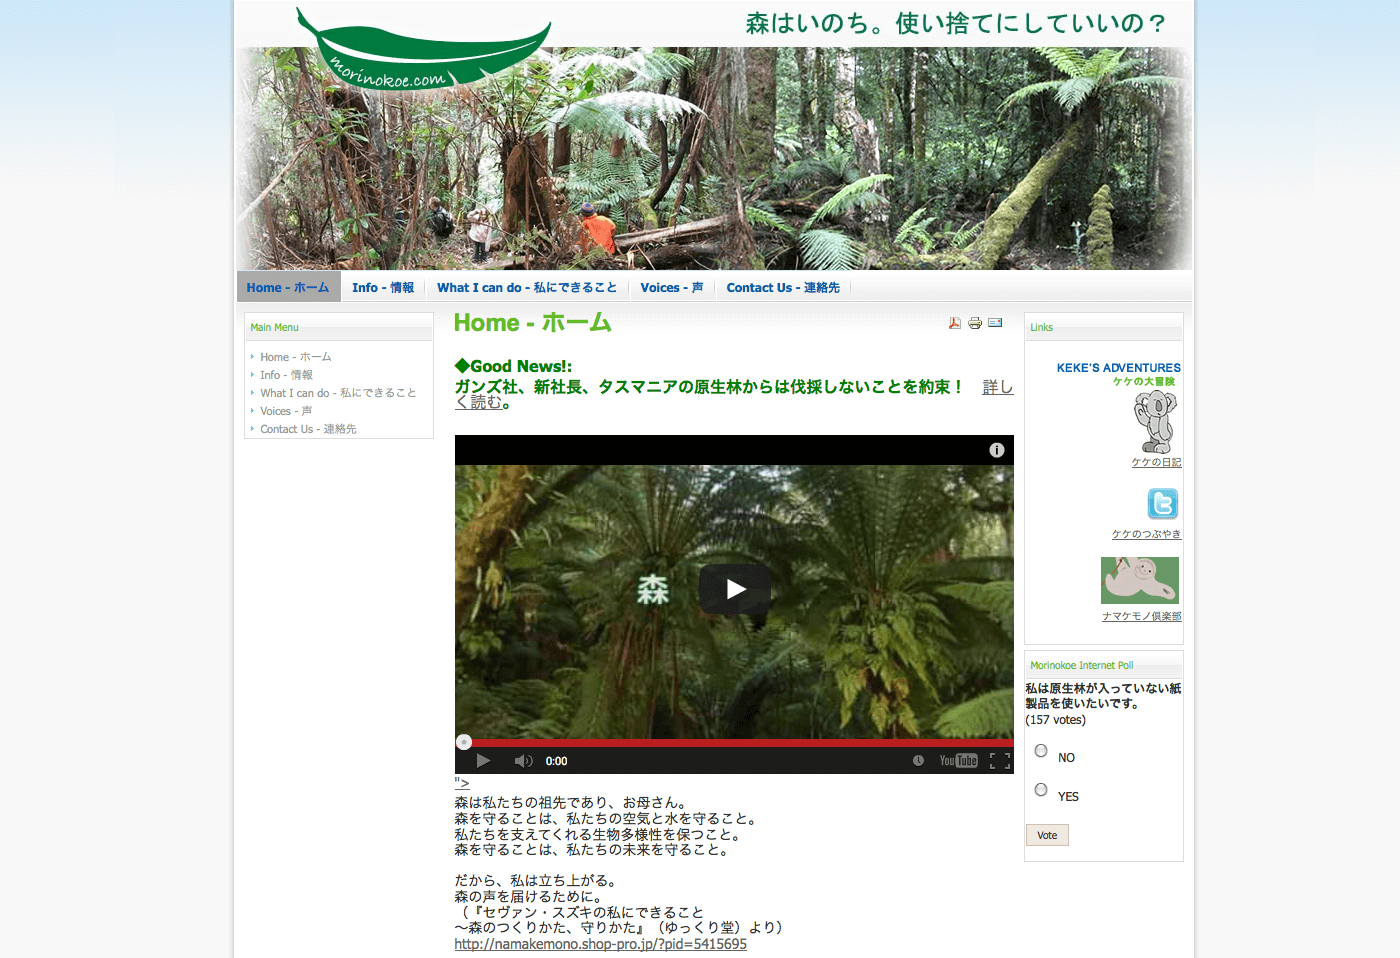 Able Video Morinokoe Website